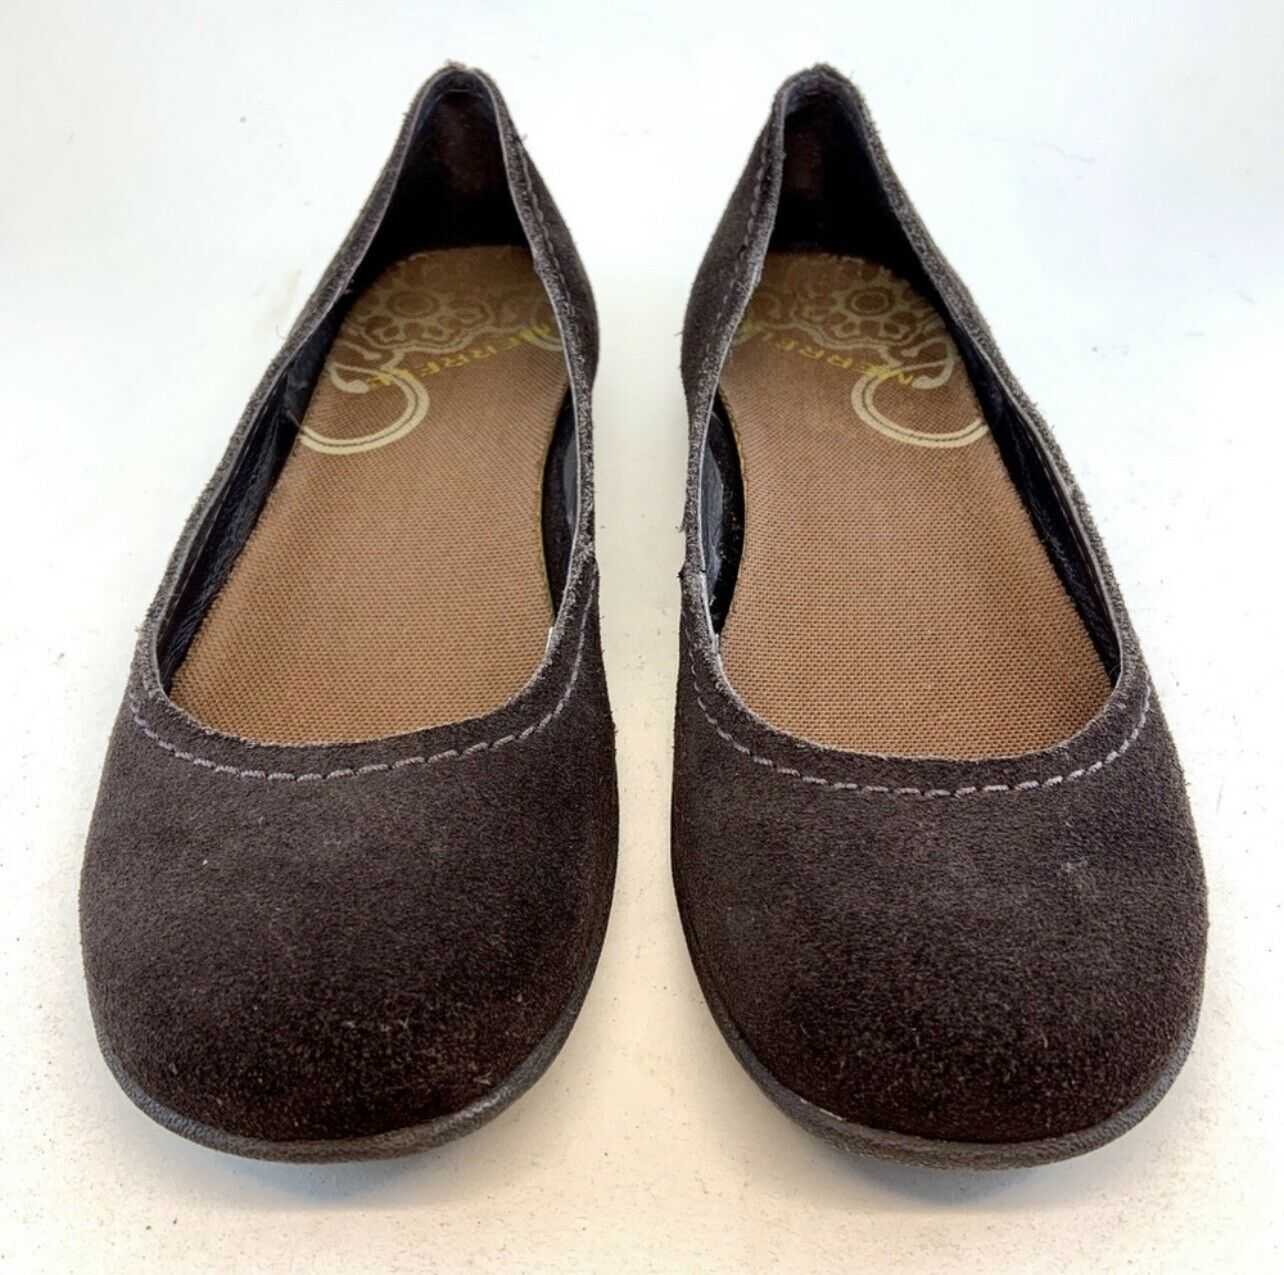 EU 38 Details about  /women/'s shoes MY GREY MER 8 moccasins purple leather BX37-38